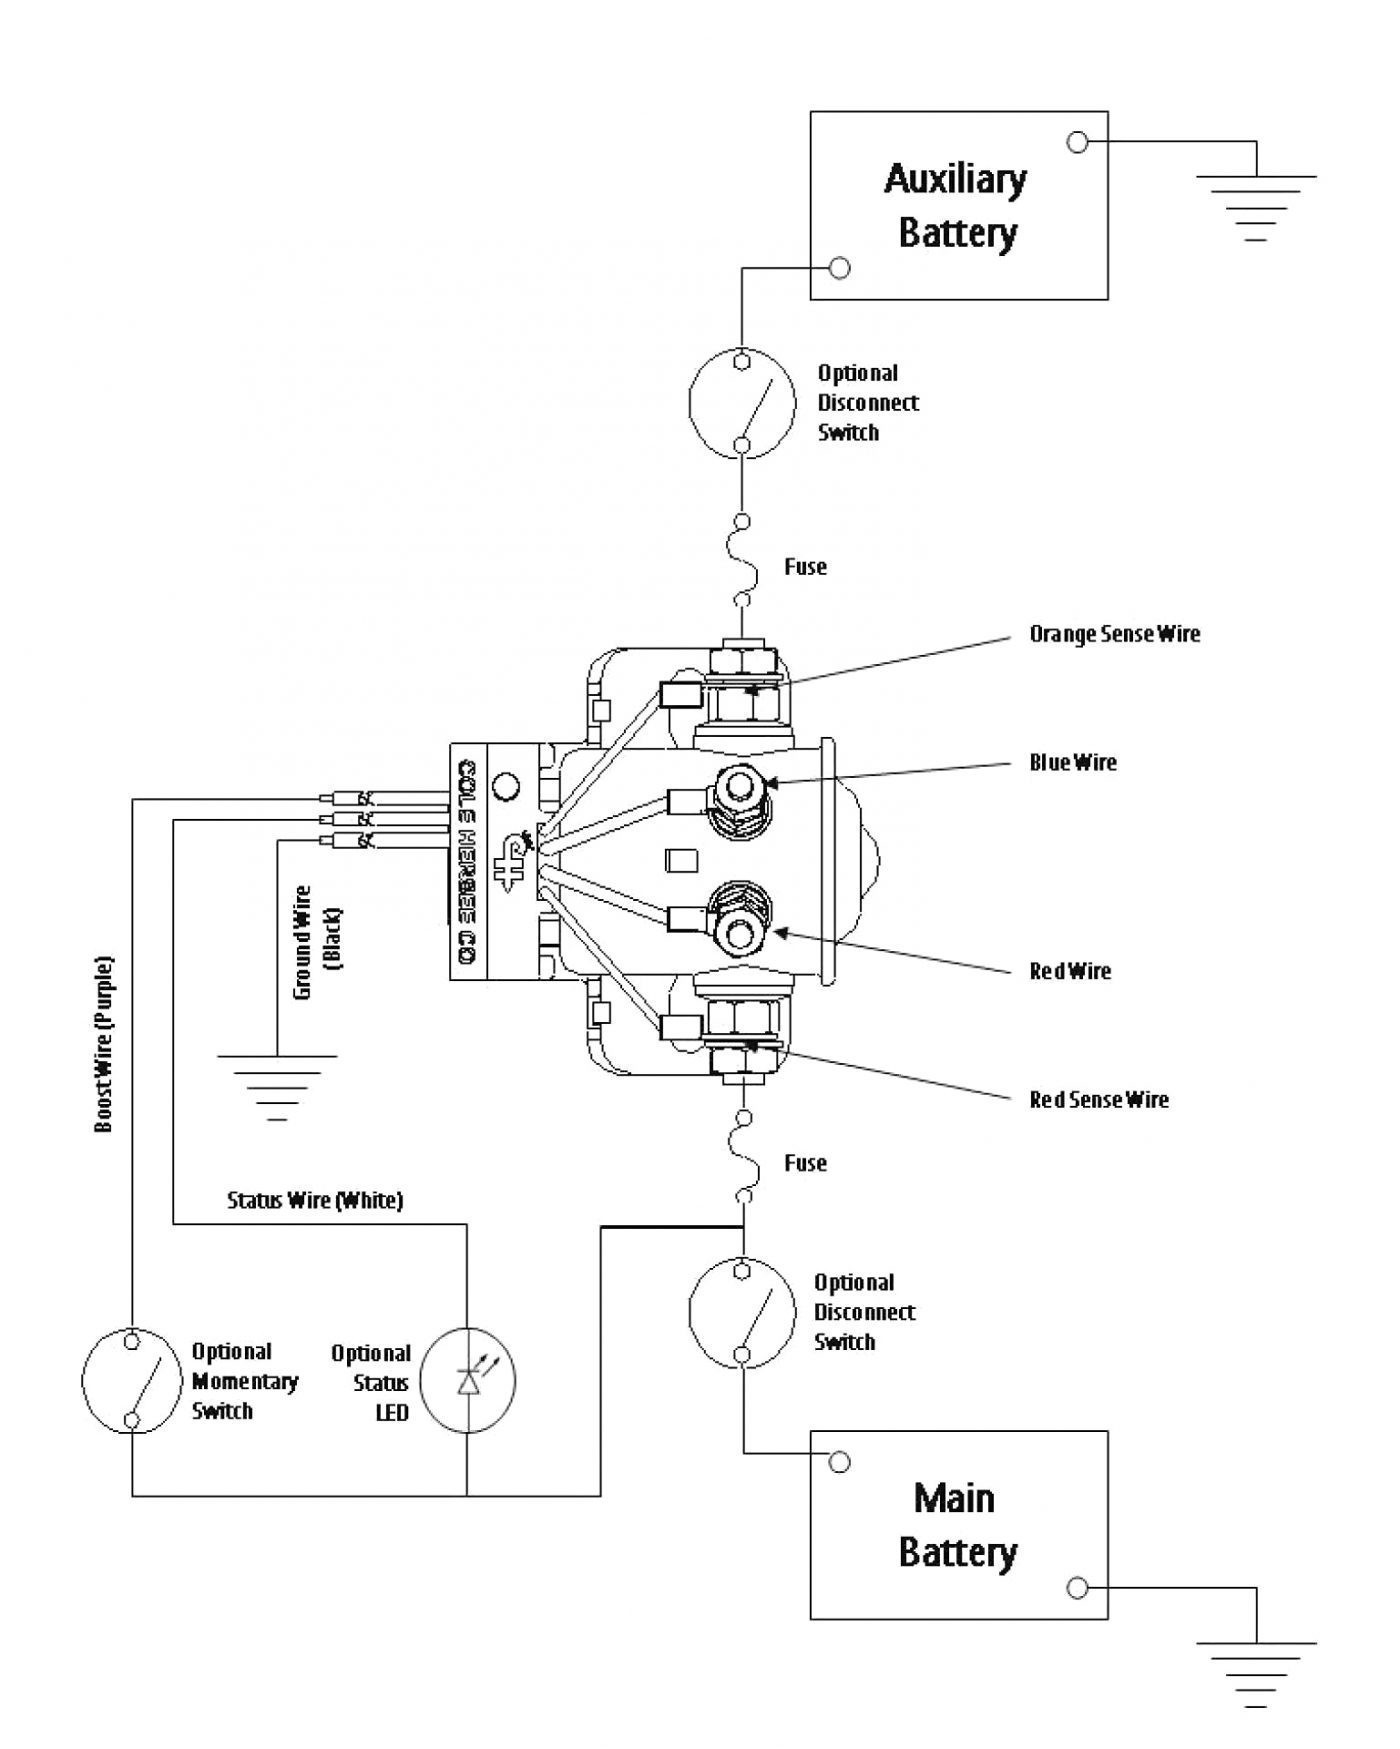 Three Phase Wiring Diagram 3 Phase Electricity Meter Wiring Diagram Reference 3 Phase Of Three Phase Wiring Diagram